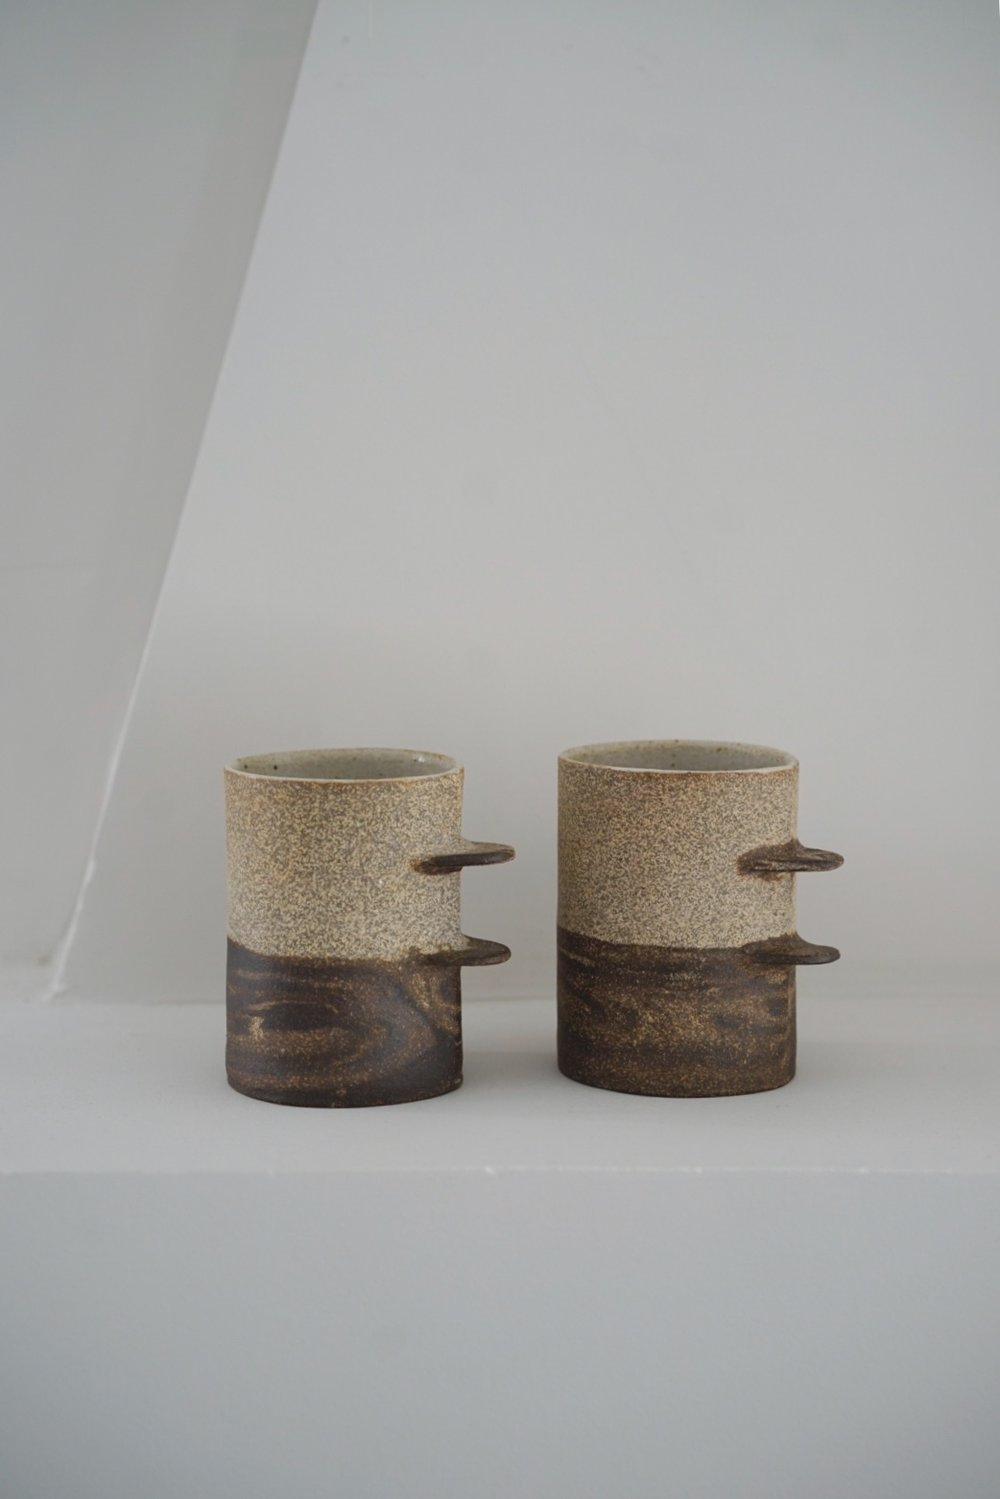 Death Valley (a set of two artworks), Chunmei Jia, 9 cm x 9.5 cm, Stoneware, 2017.